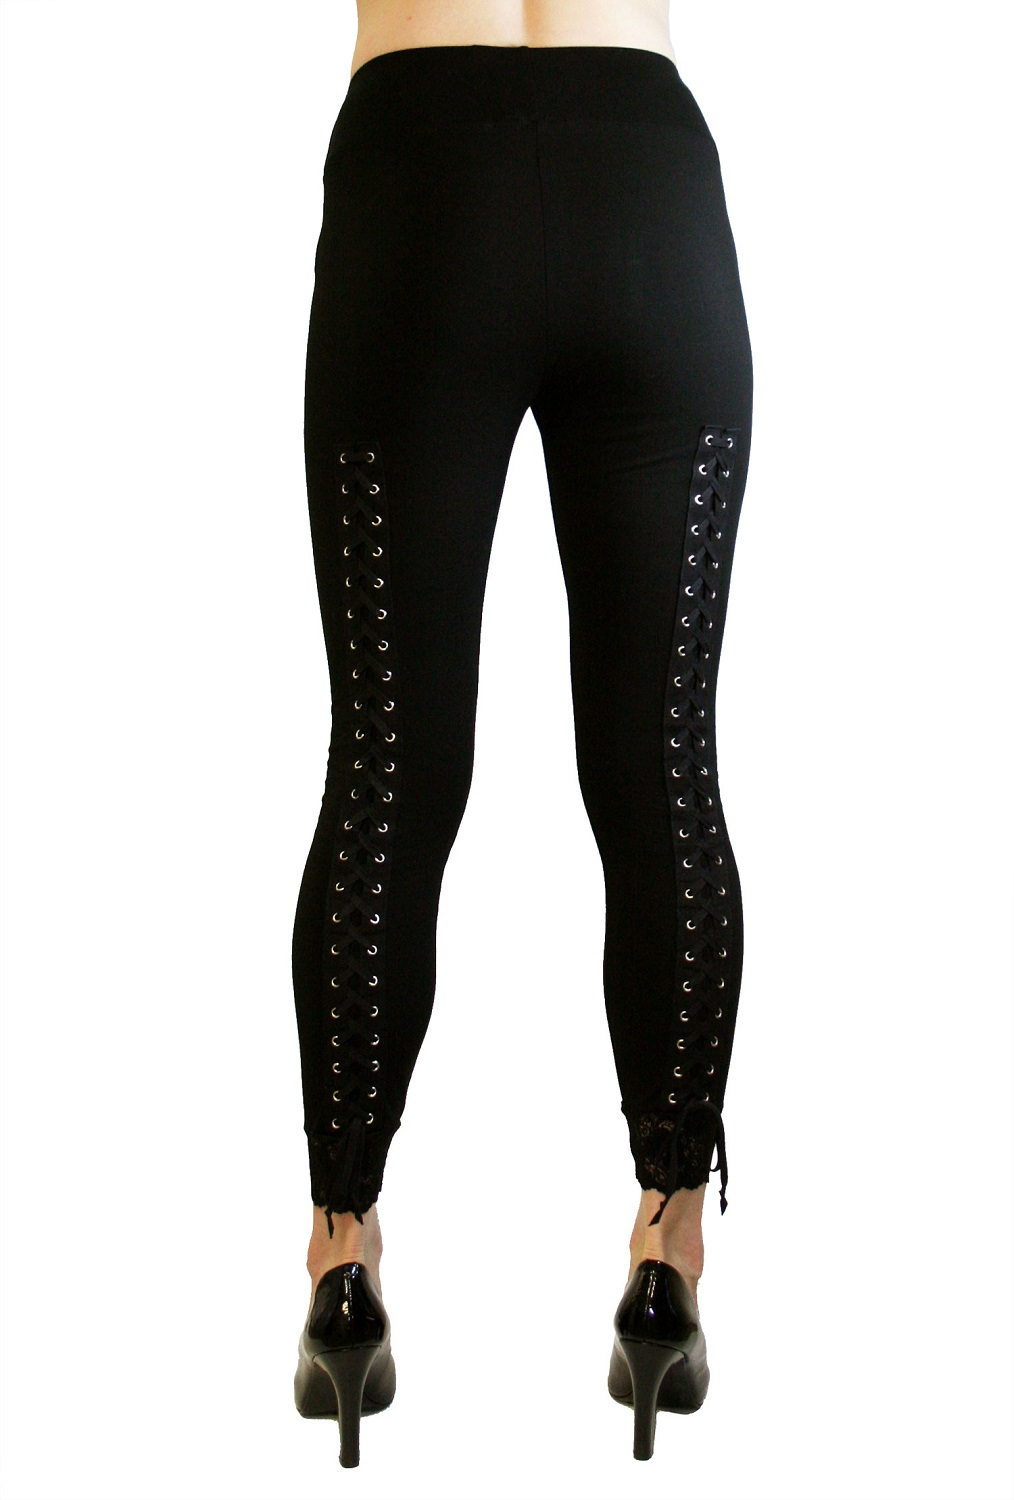 Lace-Up Back Leggings with Black Lacing Plus size corset leggings